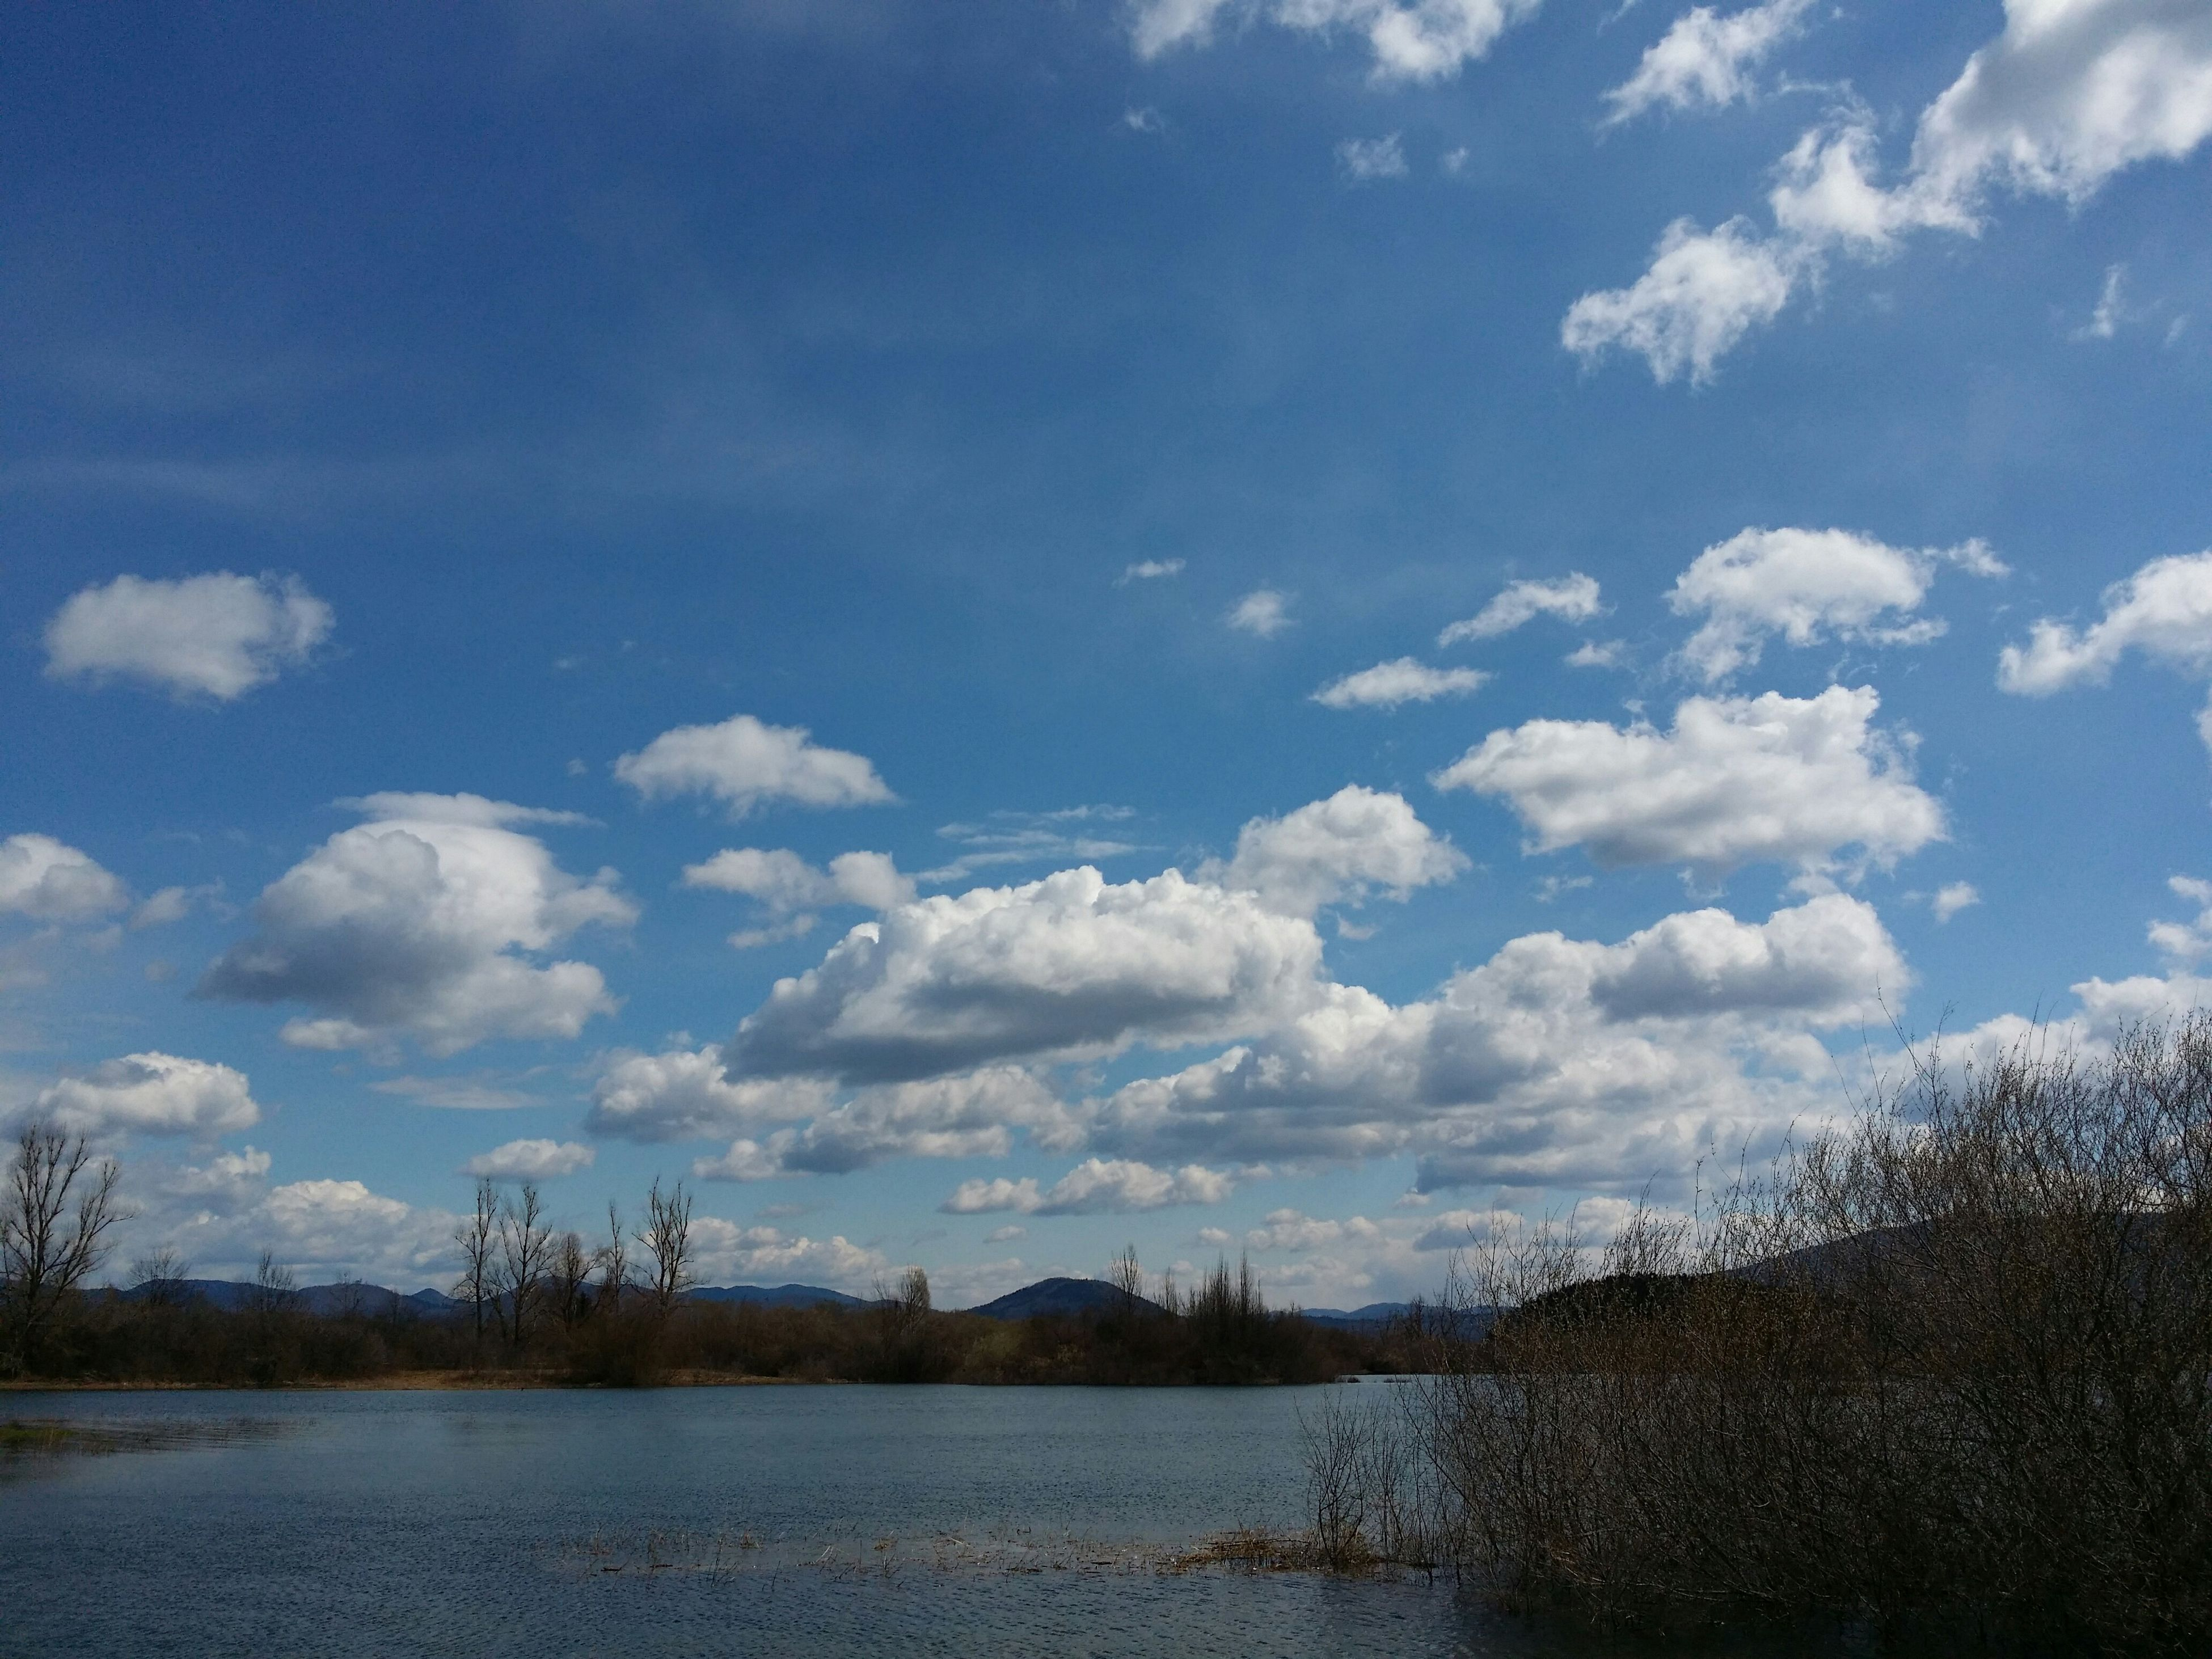 sky, tranquility, tranquil scene, cloud - sky, scenics, nature, tree, beauty in nature, cloud, landscape, field, water, blue, cloudy, day, no people, outdoors, bare tree, non-urban scene, weather